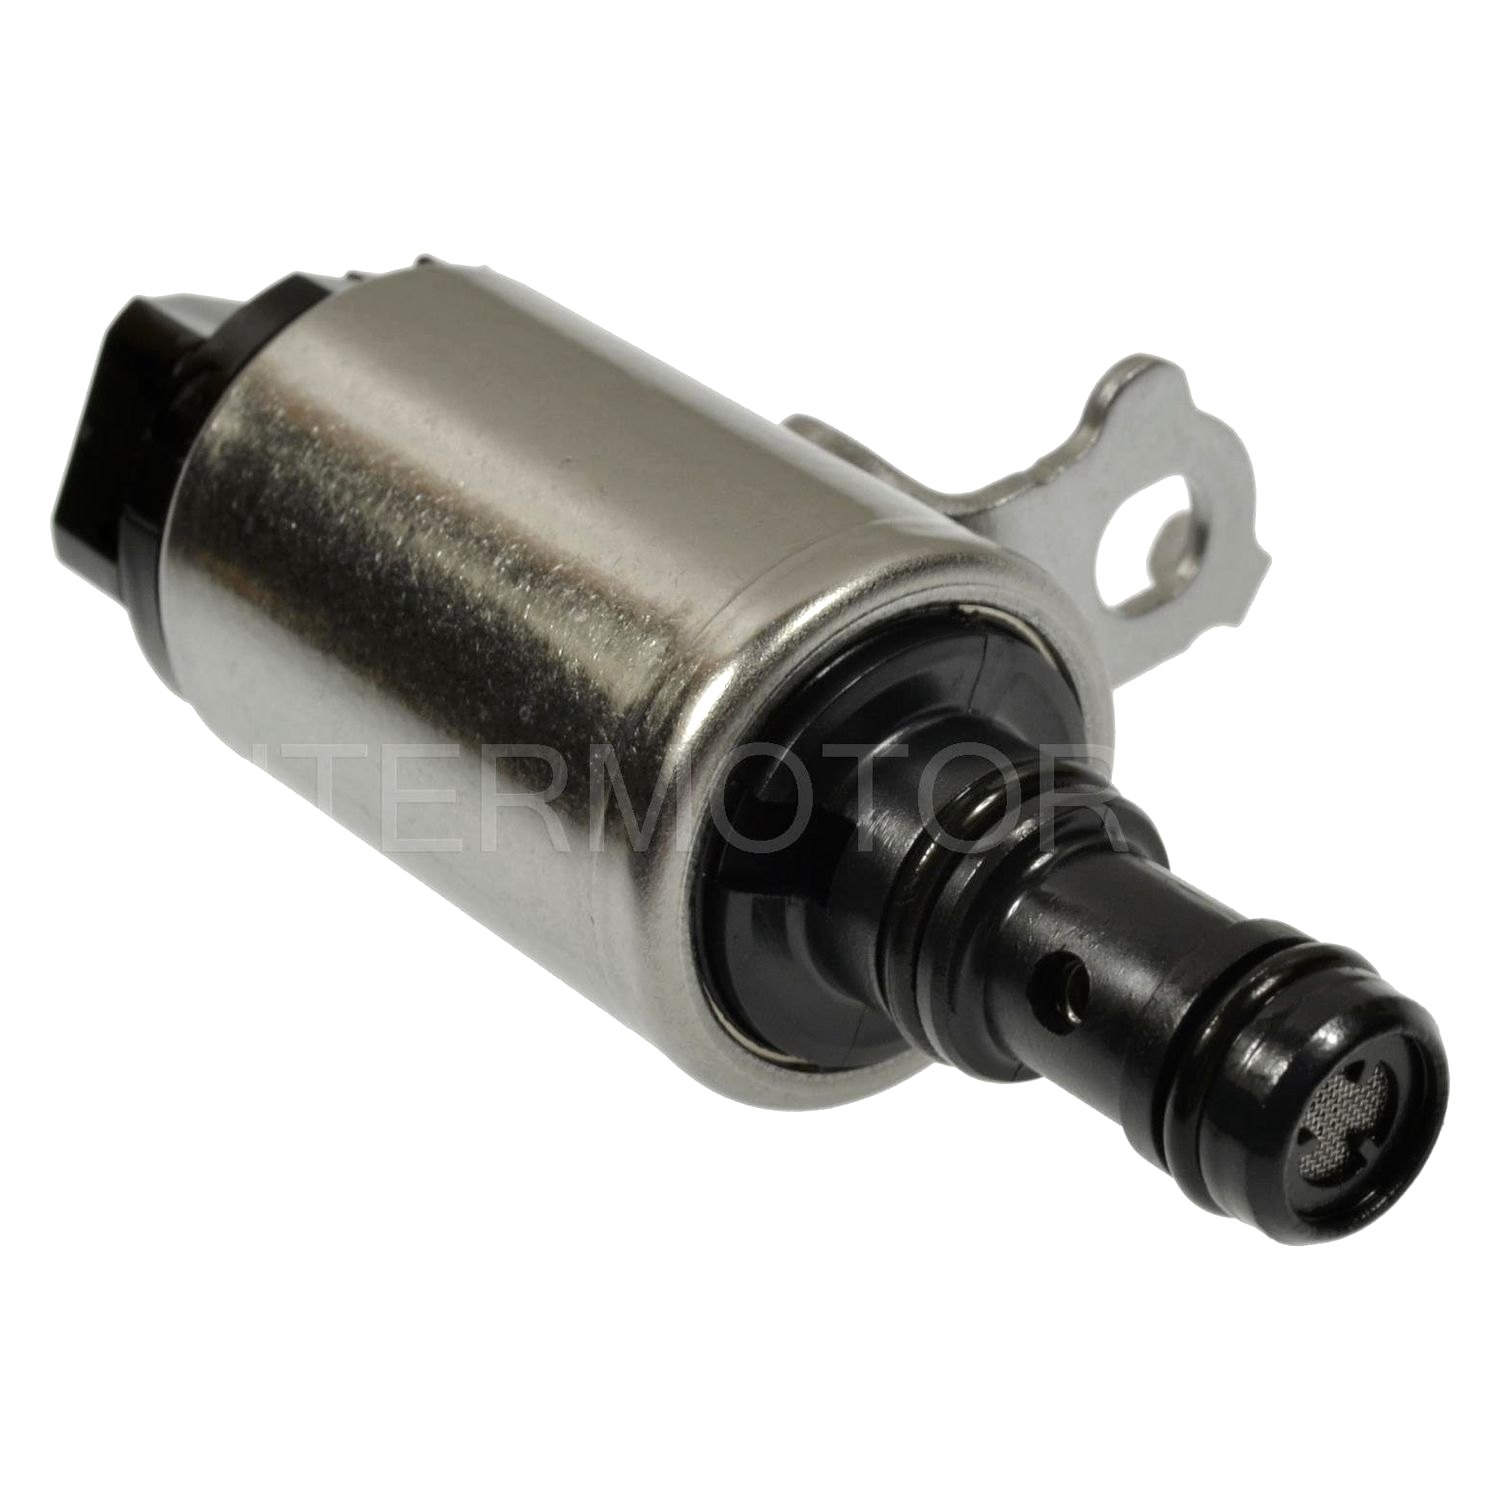 Service Manual 2003 Acura Rsx Transmission Solenoids Cl